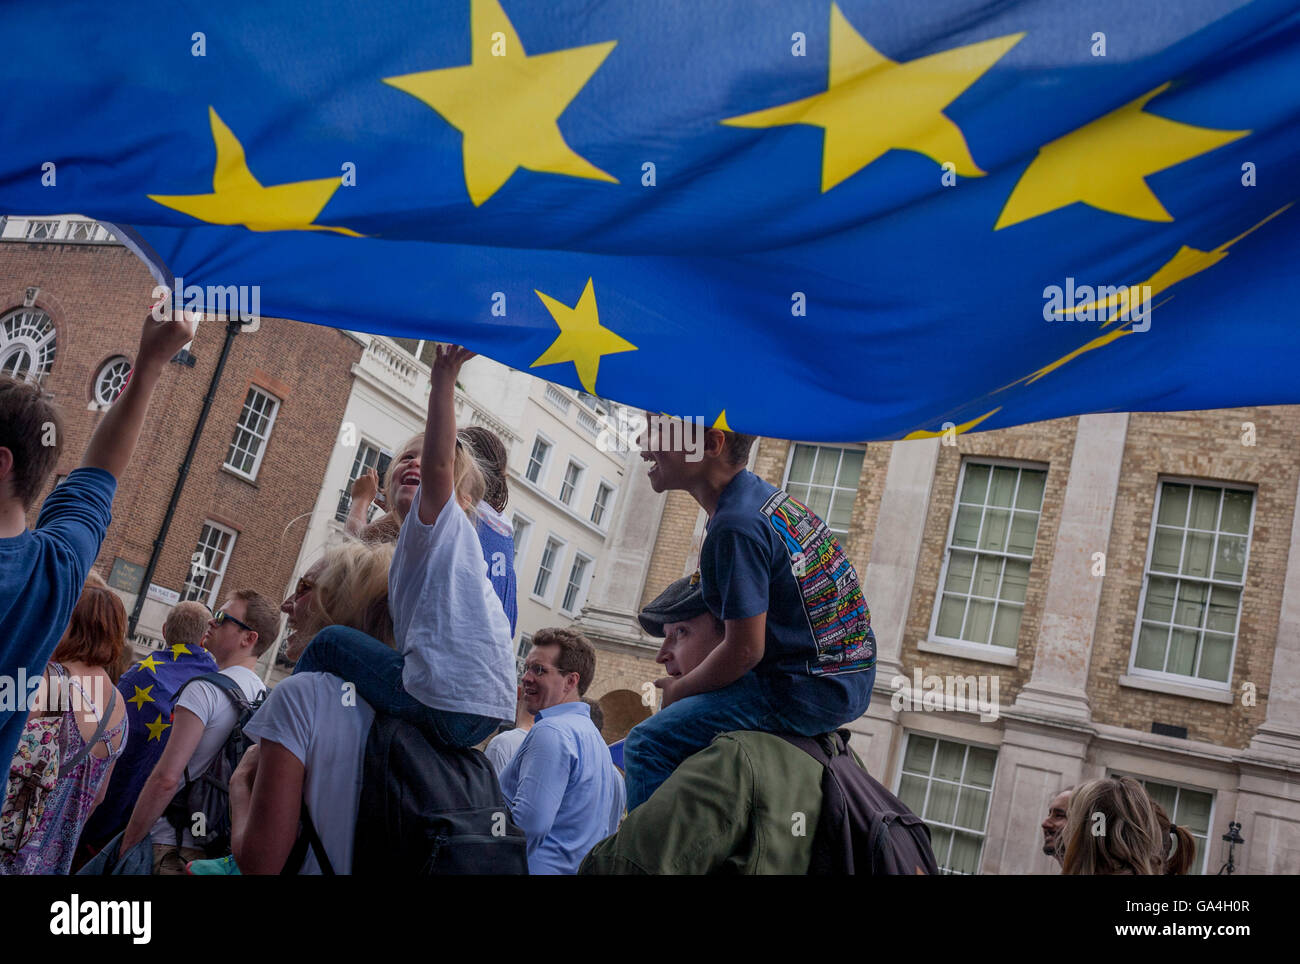 Thousands of British voters march through London to protest against the referendum decision to leave the EU (Brexit) Stock Photo